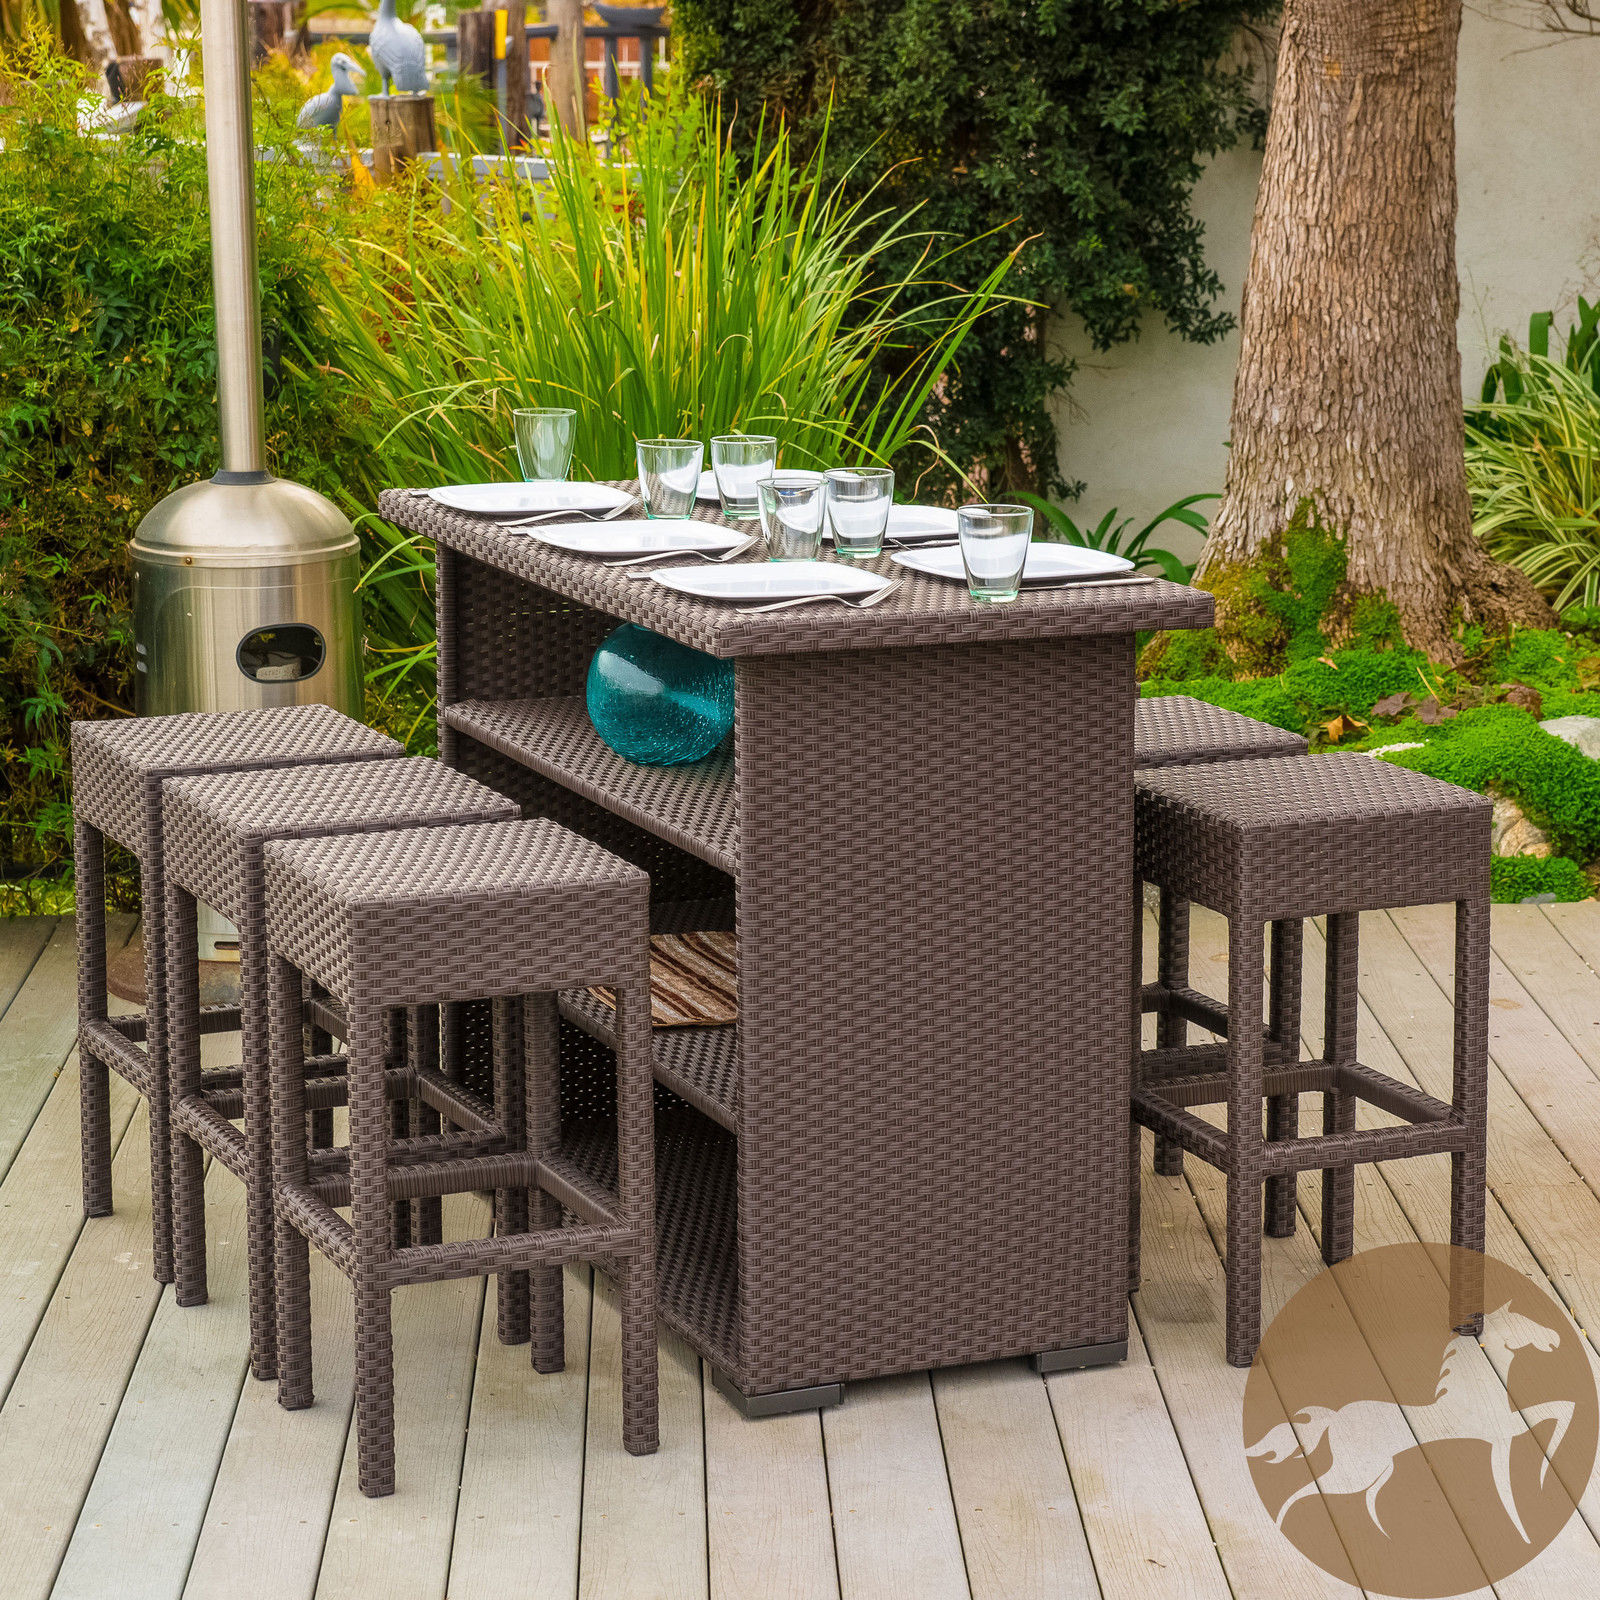 Bar Furniture Sets: 7 Piece Brown Wicker Bar Patio Set W/ Bar Stools